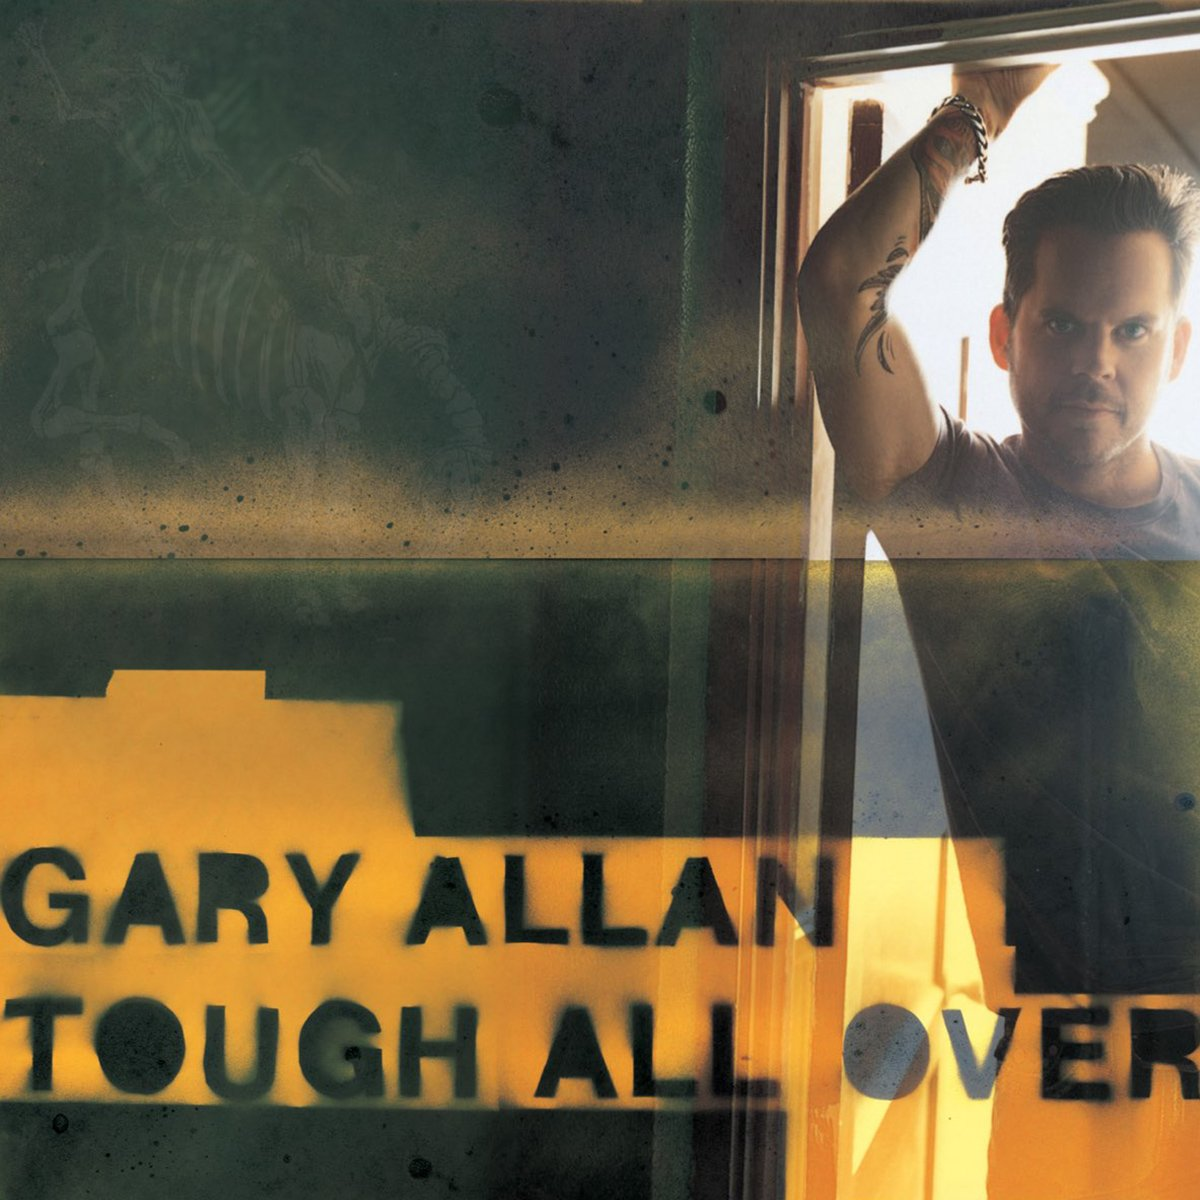 Gary Allan, Tough All Over